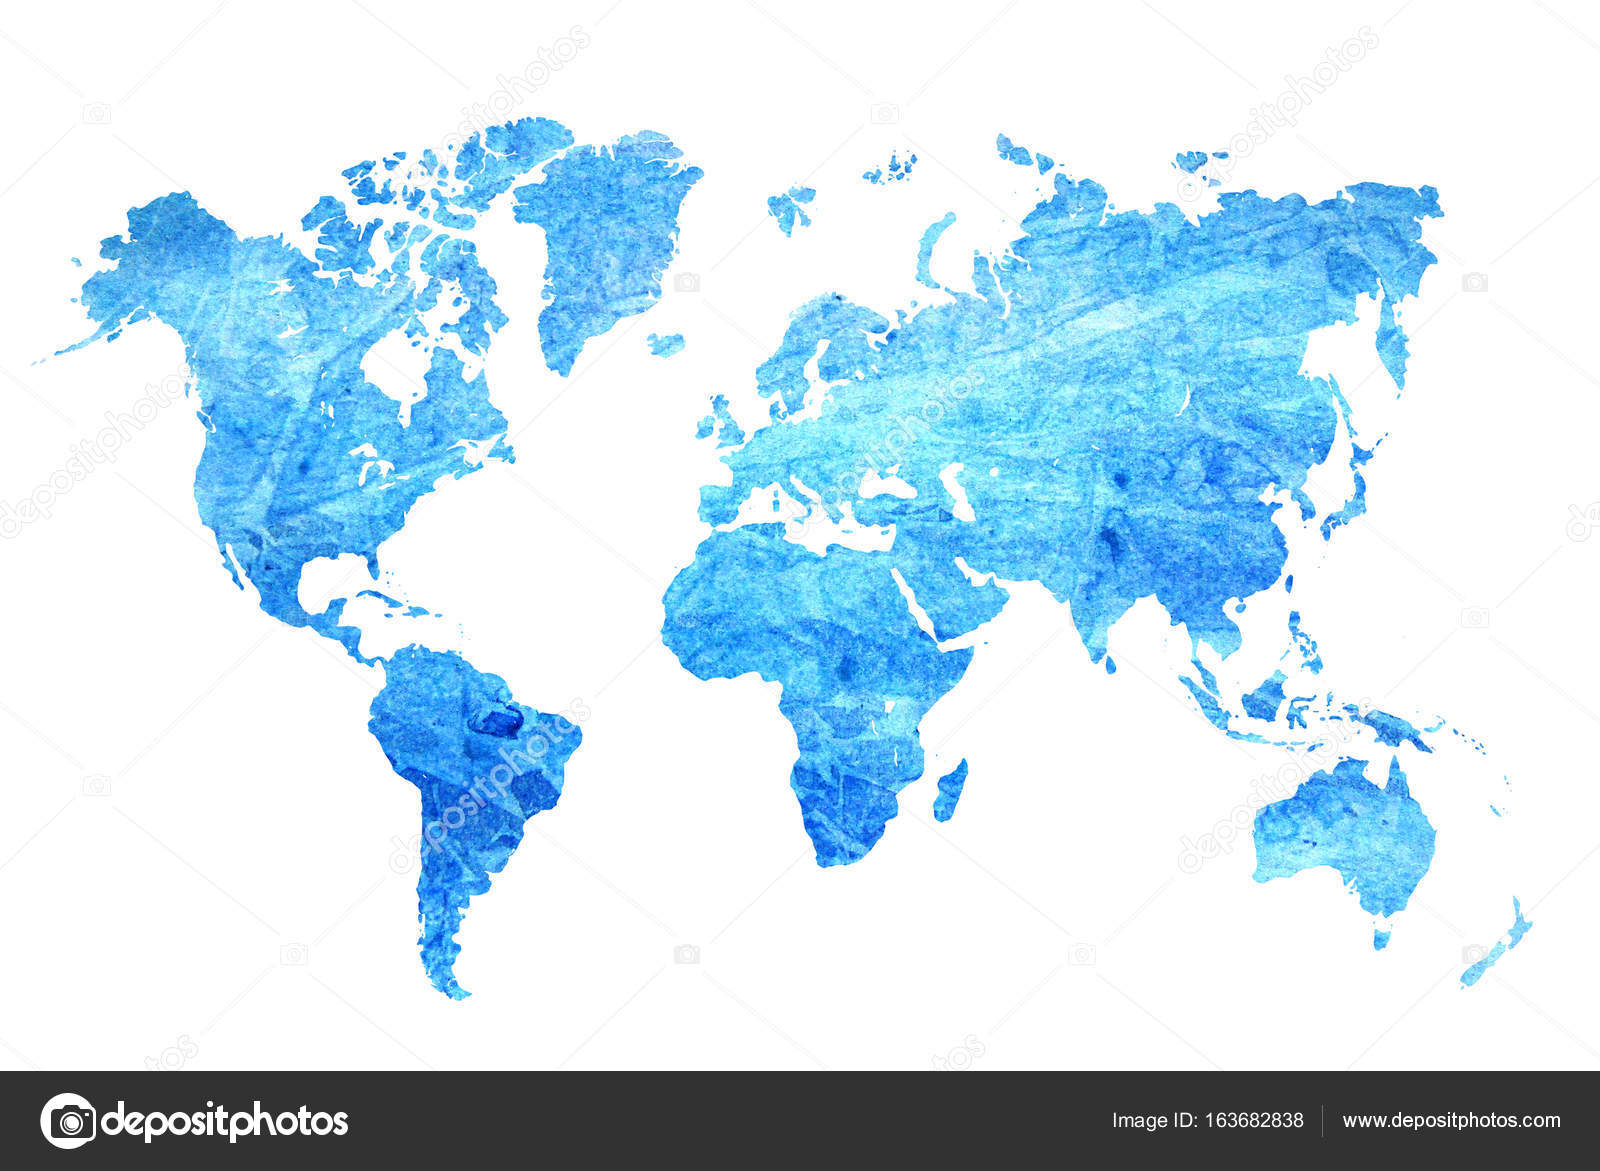 Watercolor blue map of the world — Stock Photo © chekat #163682838